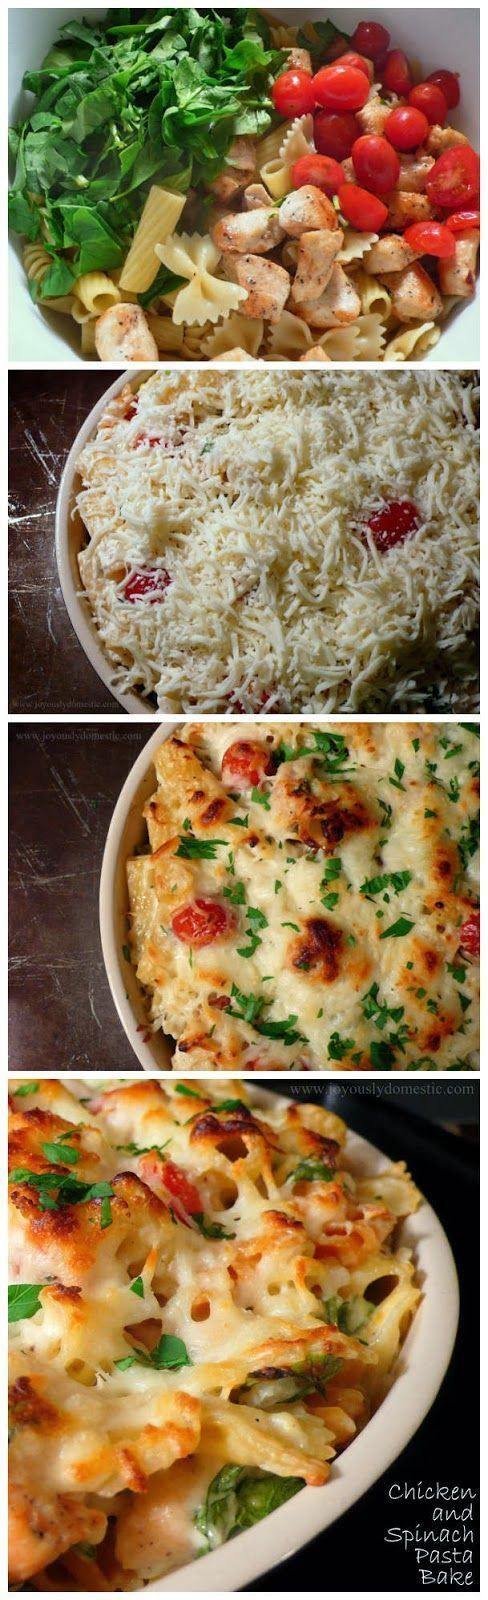 Chicken and Spinach Pasta Bake | The Women's Lounge